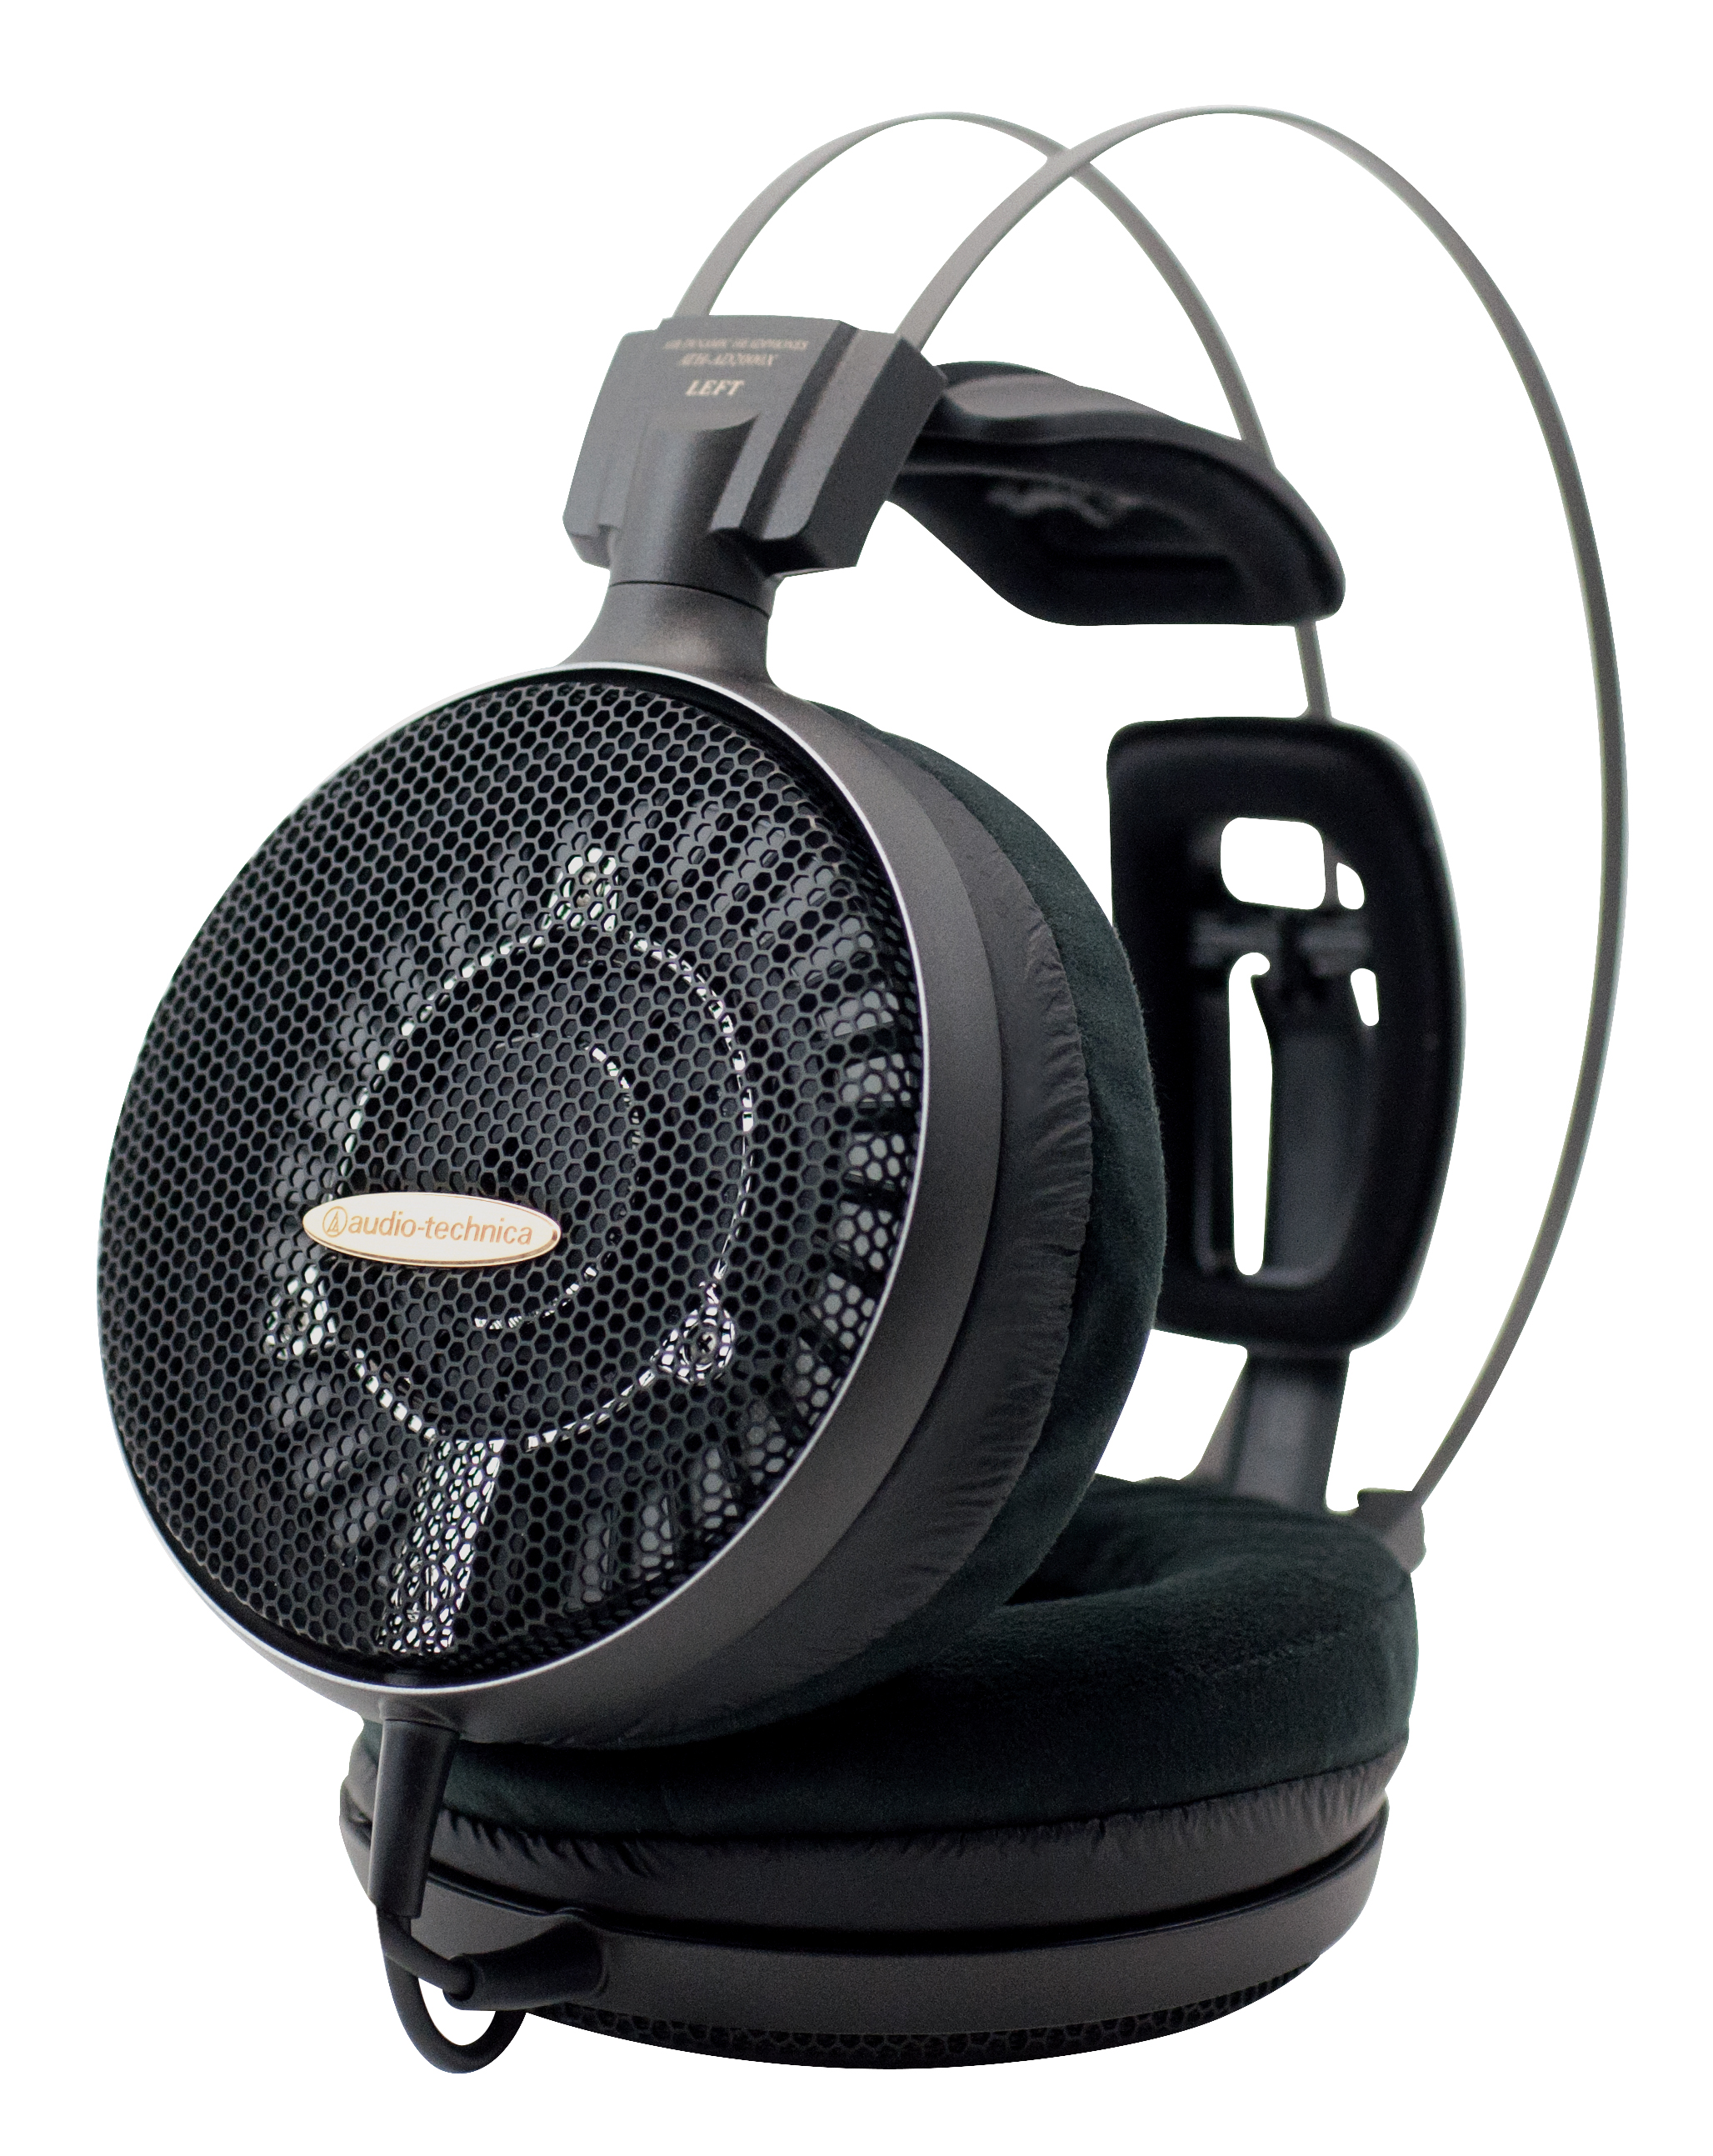 Audio-Technica ATH-AD2000X Öppen High-end-hörlur